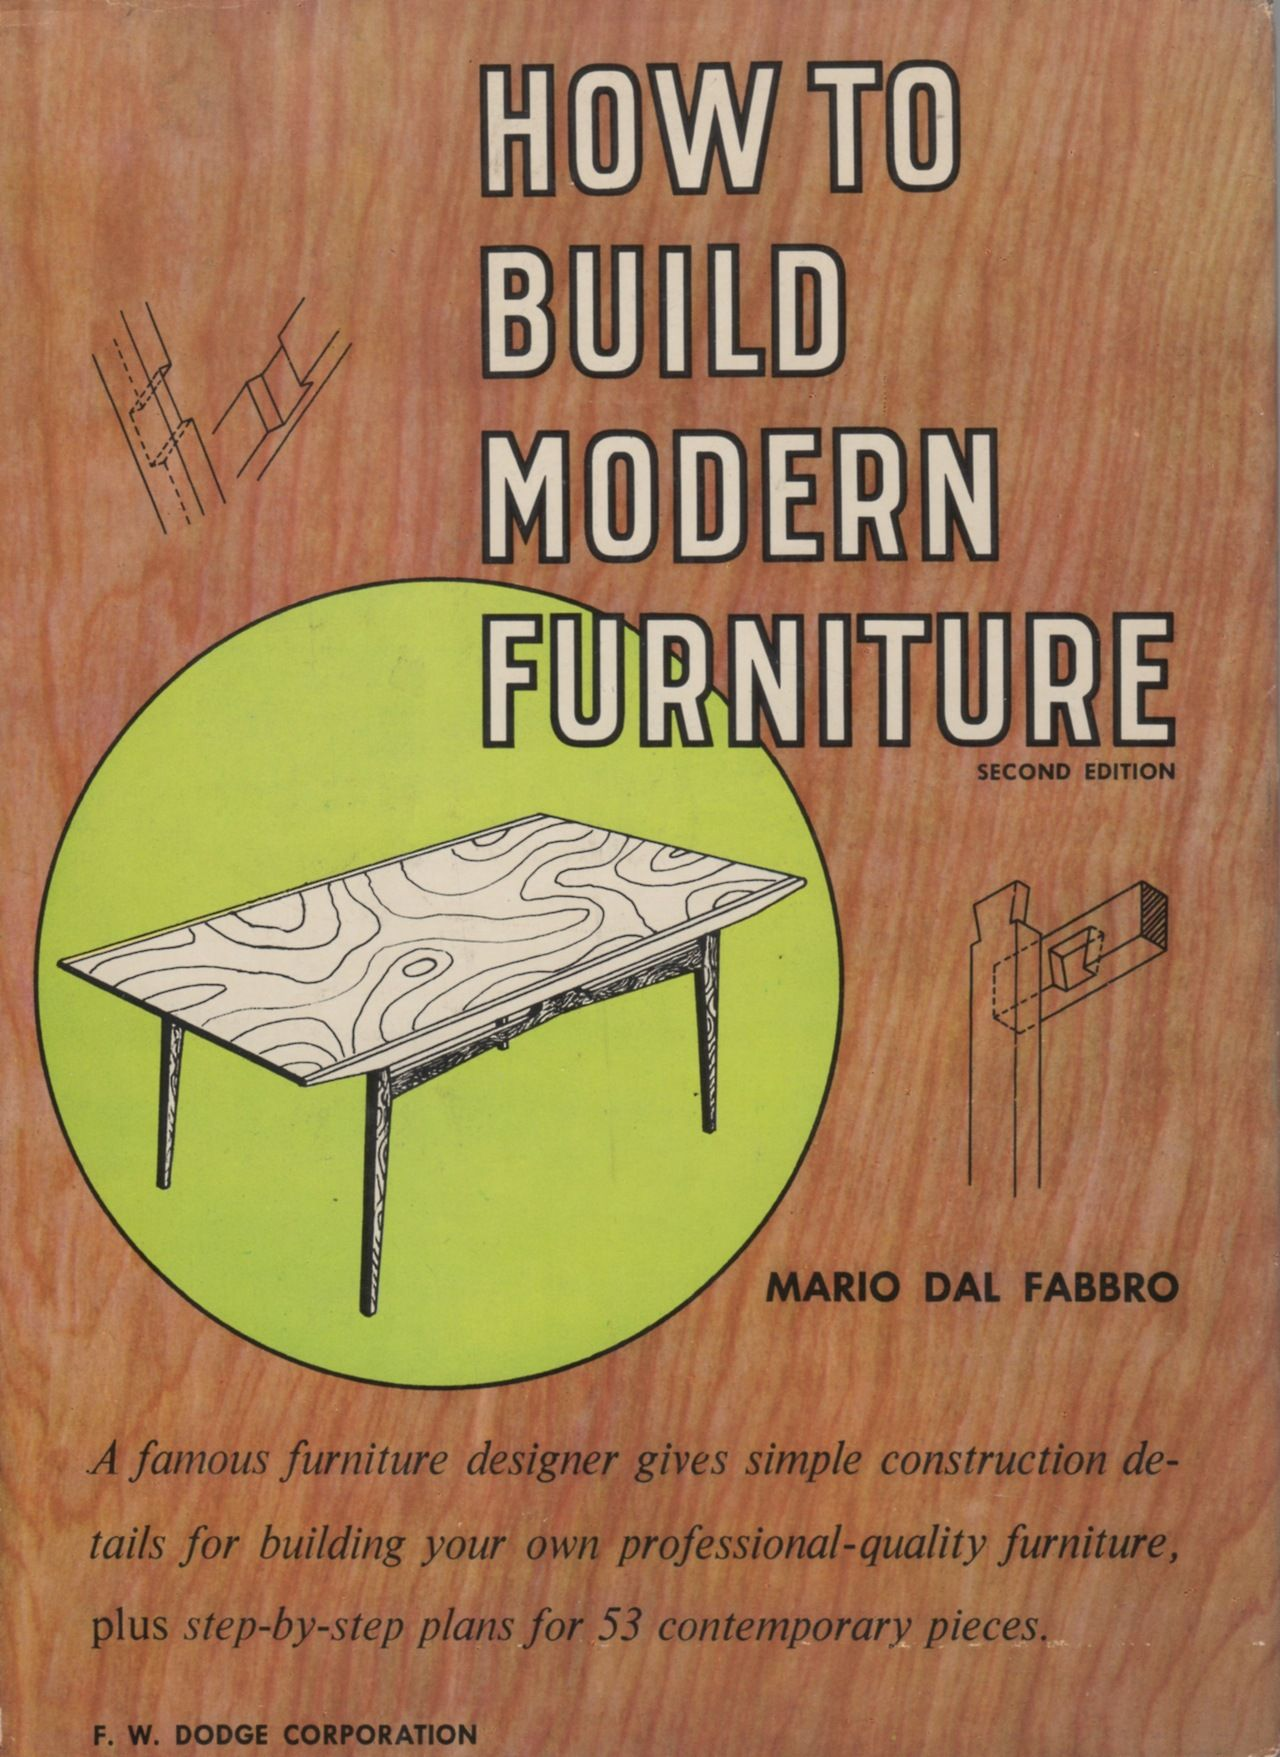 Superb How To Build Modern Furniture, Second Edition By Mario Dal Fabbro. F.W.  Dodge Corporation, 1957. | Vintage Mario Dal Fabbro Books | Pinterest